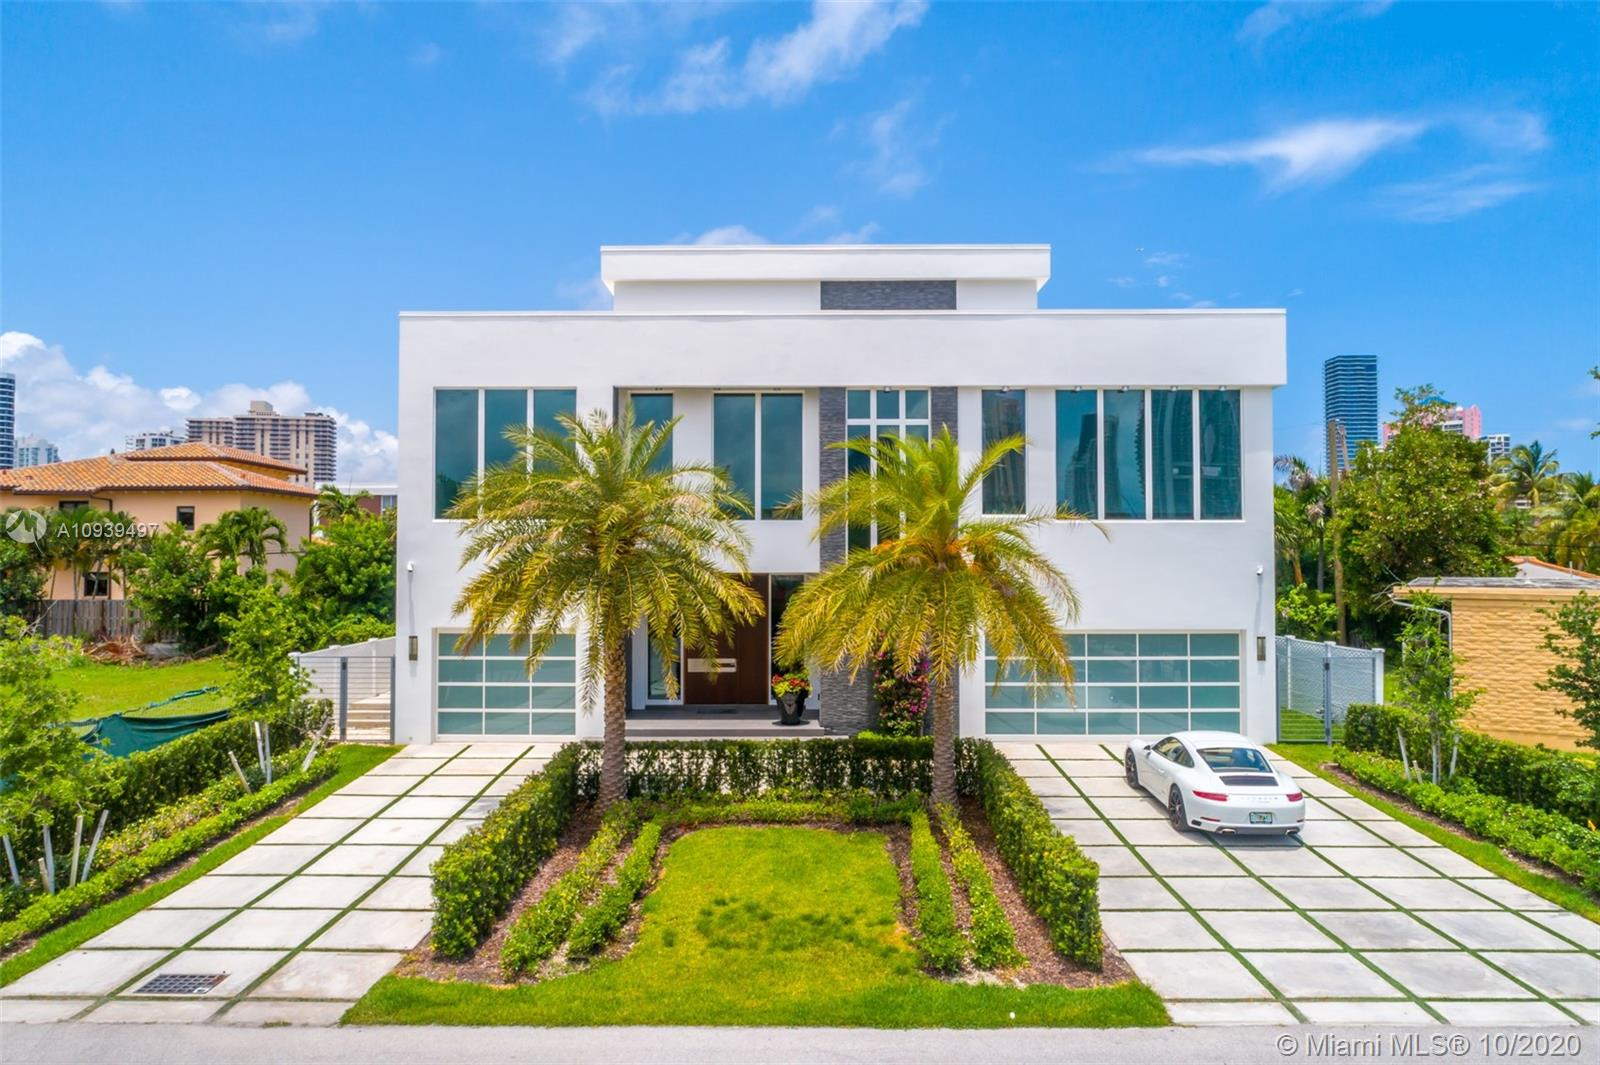 Newly built and designed to the nines, this modern masterpiece offers 5 grand bedrooms, 5.5 bathrooms, an office, a true master chef's kitchen and breathtaking ceiling height that make for a one-of-a-kind home just walking distance from Sunny Isles Beach. Interior finishes throughout this 6,254 sq ft gem include Roberto Cavalli floors, custom light fixtures, dropped ceiling lights, and accent walls to list a few.